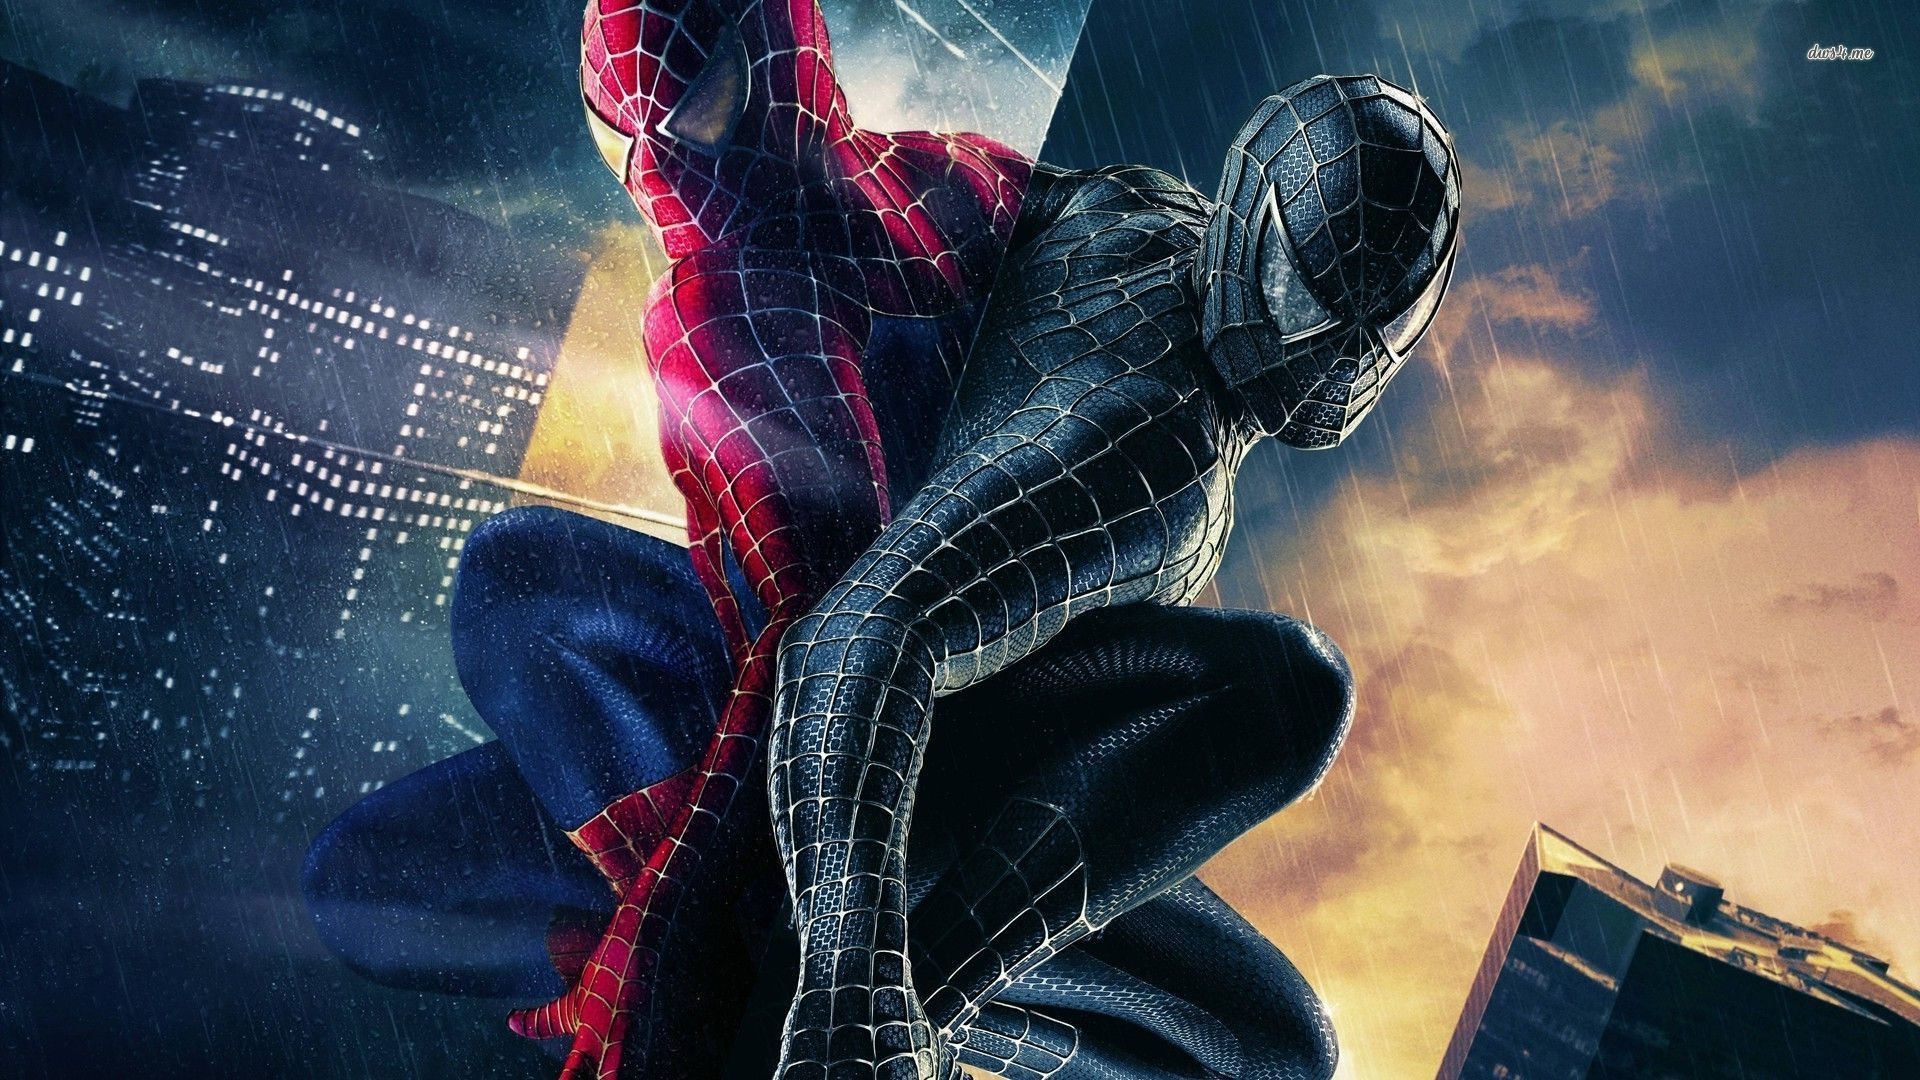 Spider Man 3 Wallpapers Wallpaper Cave Spiderman Pictures Spiderman 3 Wallpaper Spiderman